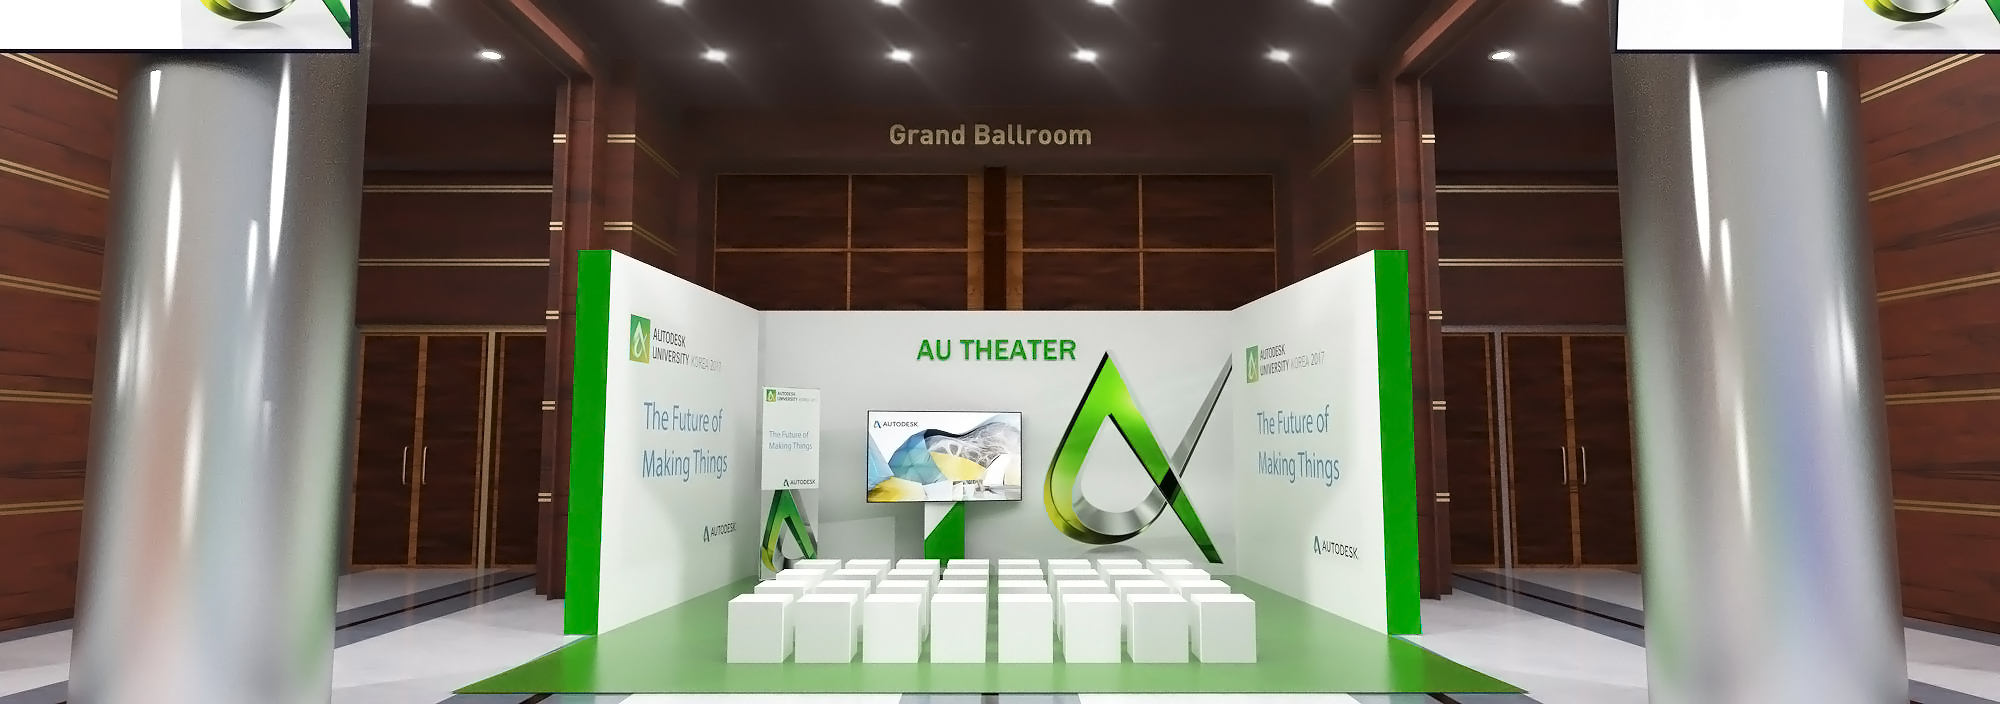 Autodesk University_EX _Rendering_14